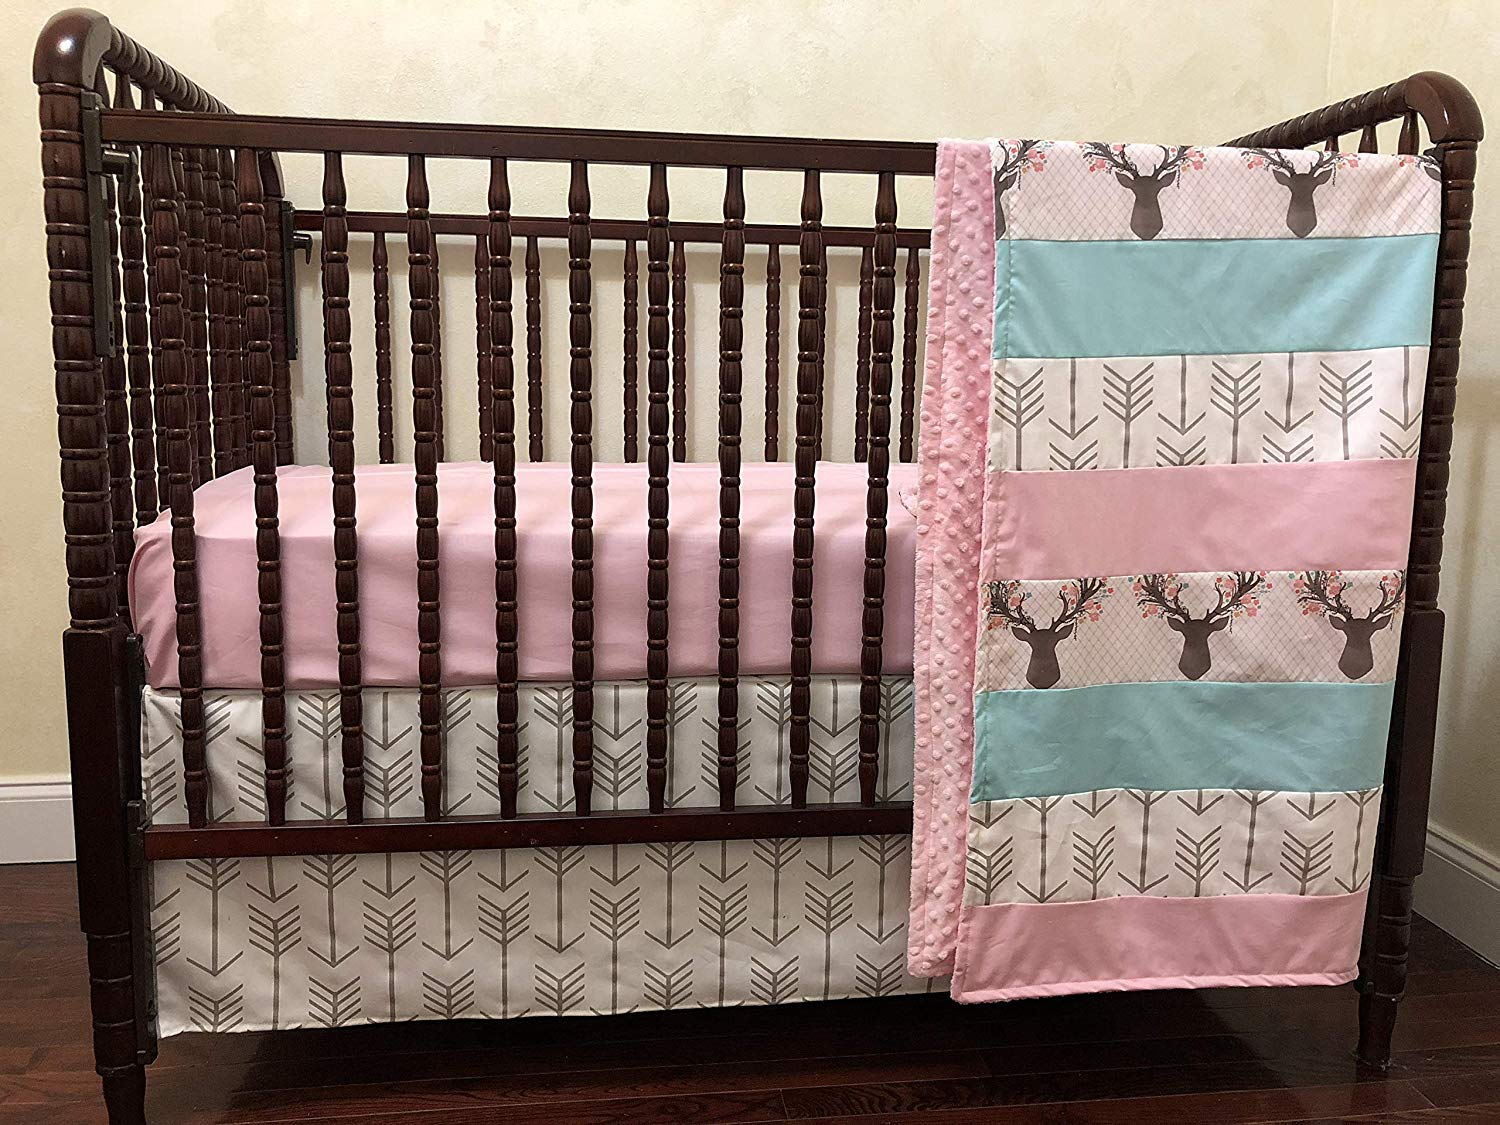 b4ee9a4b7 Get Quotations · Nursery Bedding, Woodland Crib Bedding Set - Deer Crib  Bedding, Pink and Aqua Girl